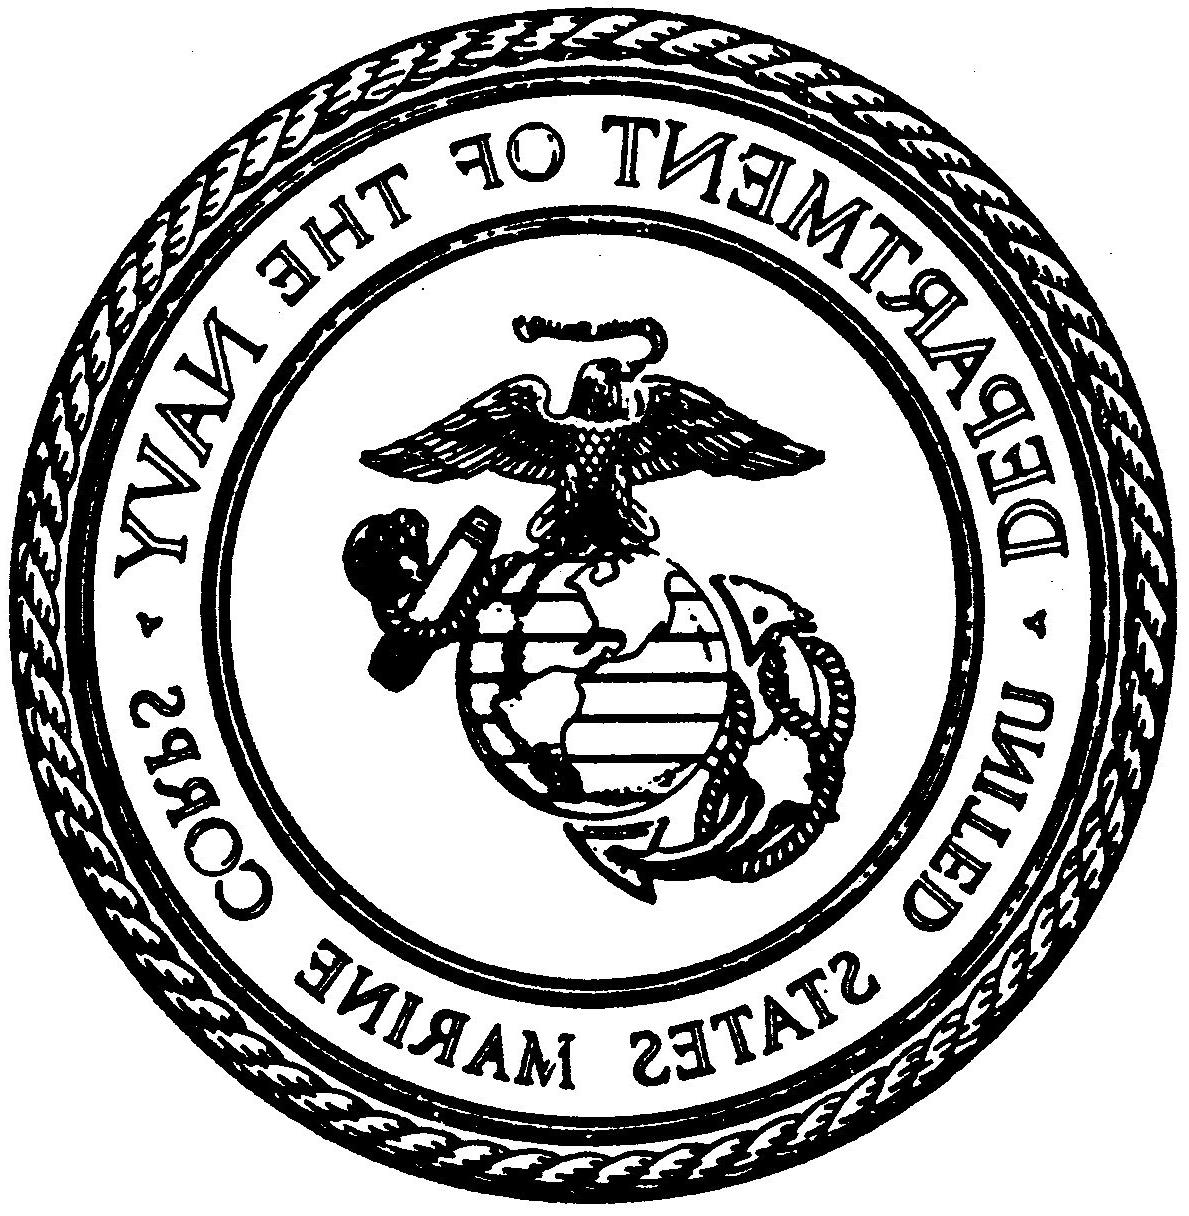 Marine Corps Emblem Drawing At Getdrawings Free For Personal